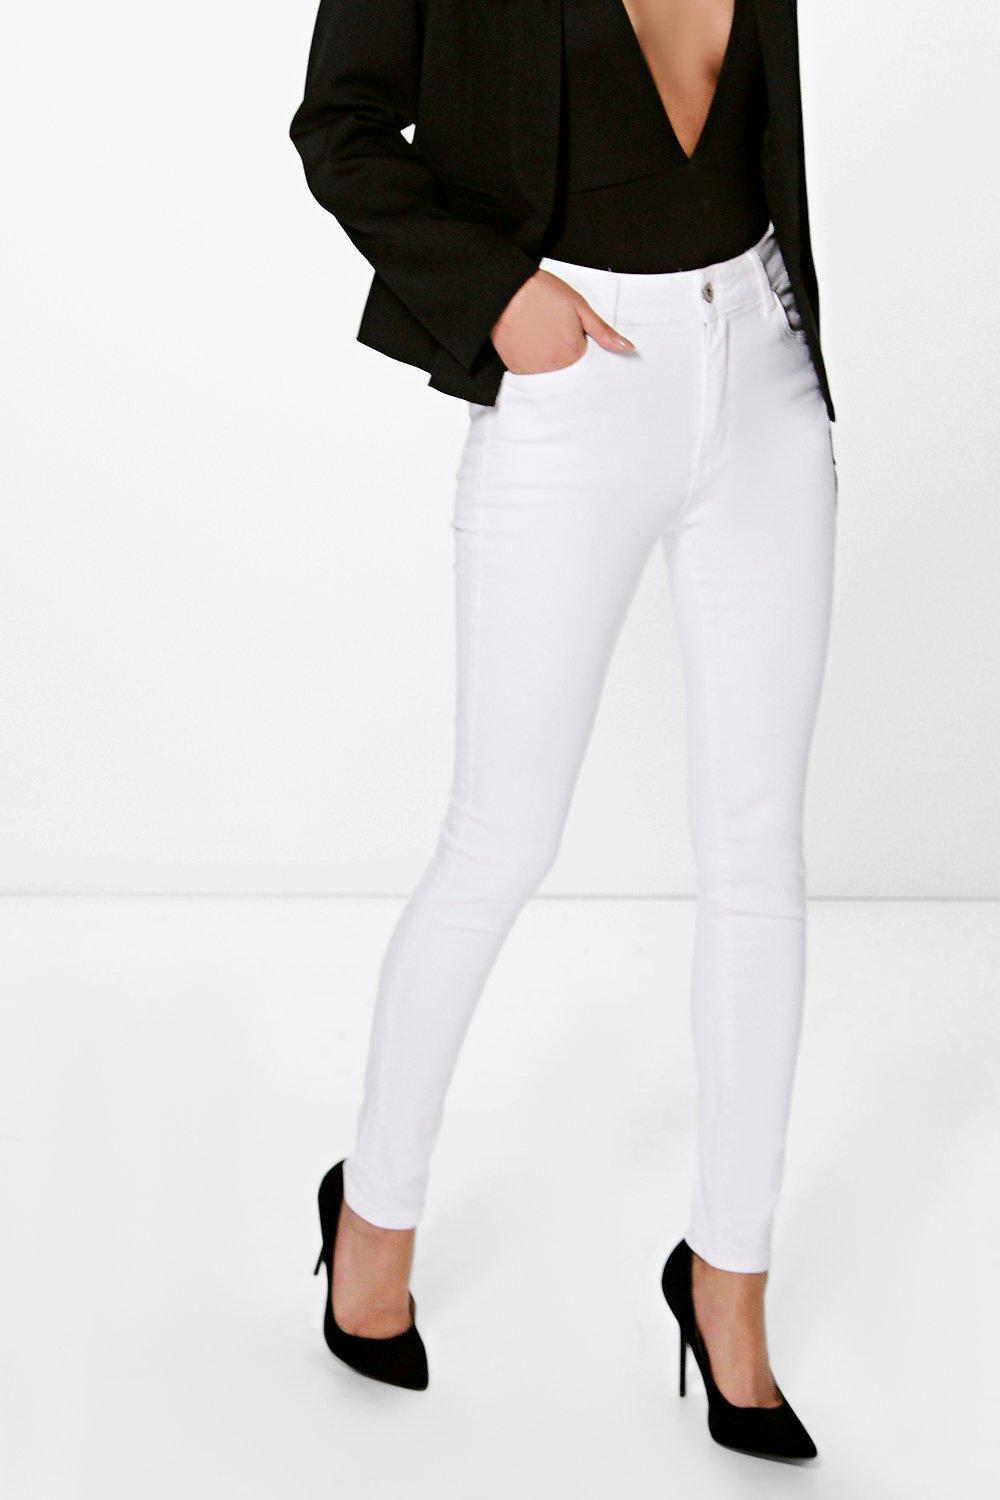 Mid Rise Skinny Jeans White - style: skinny leg; length: standard; pattern: plain; waist: high rise; pocket detail: traditional 5 pocket; predominant colour: white; occasions: casual; fibres: cotton - stretch; texture group: denim; pattern type: fabric; season: s/s 2016; wardrobe: highlight